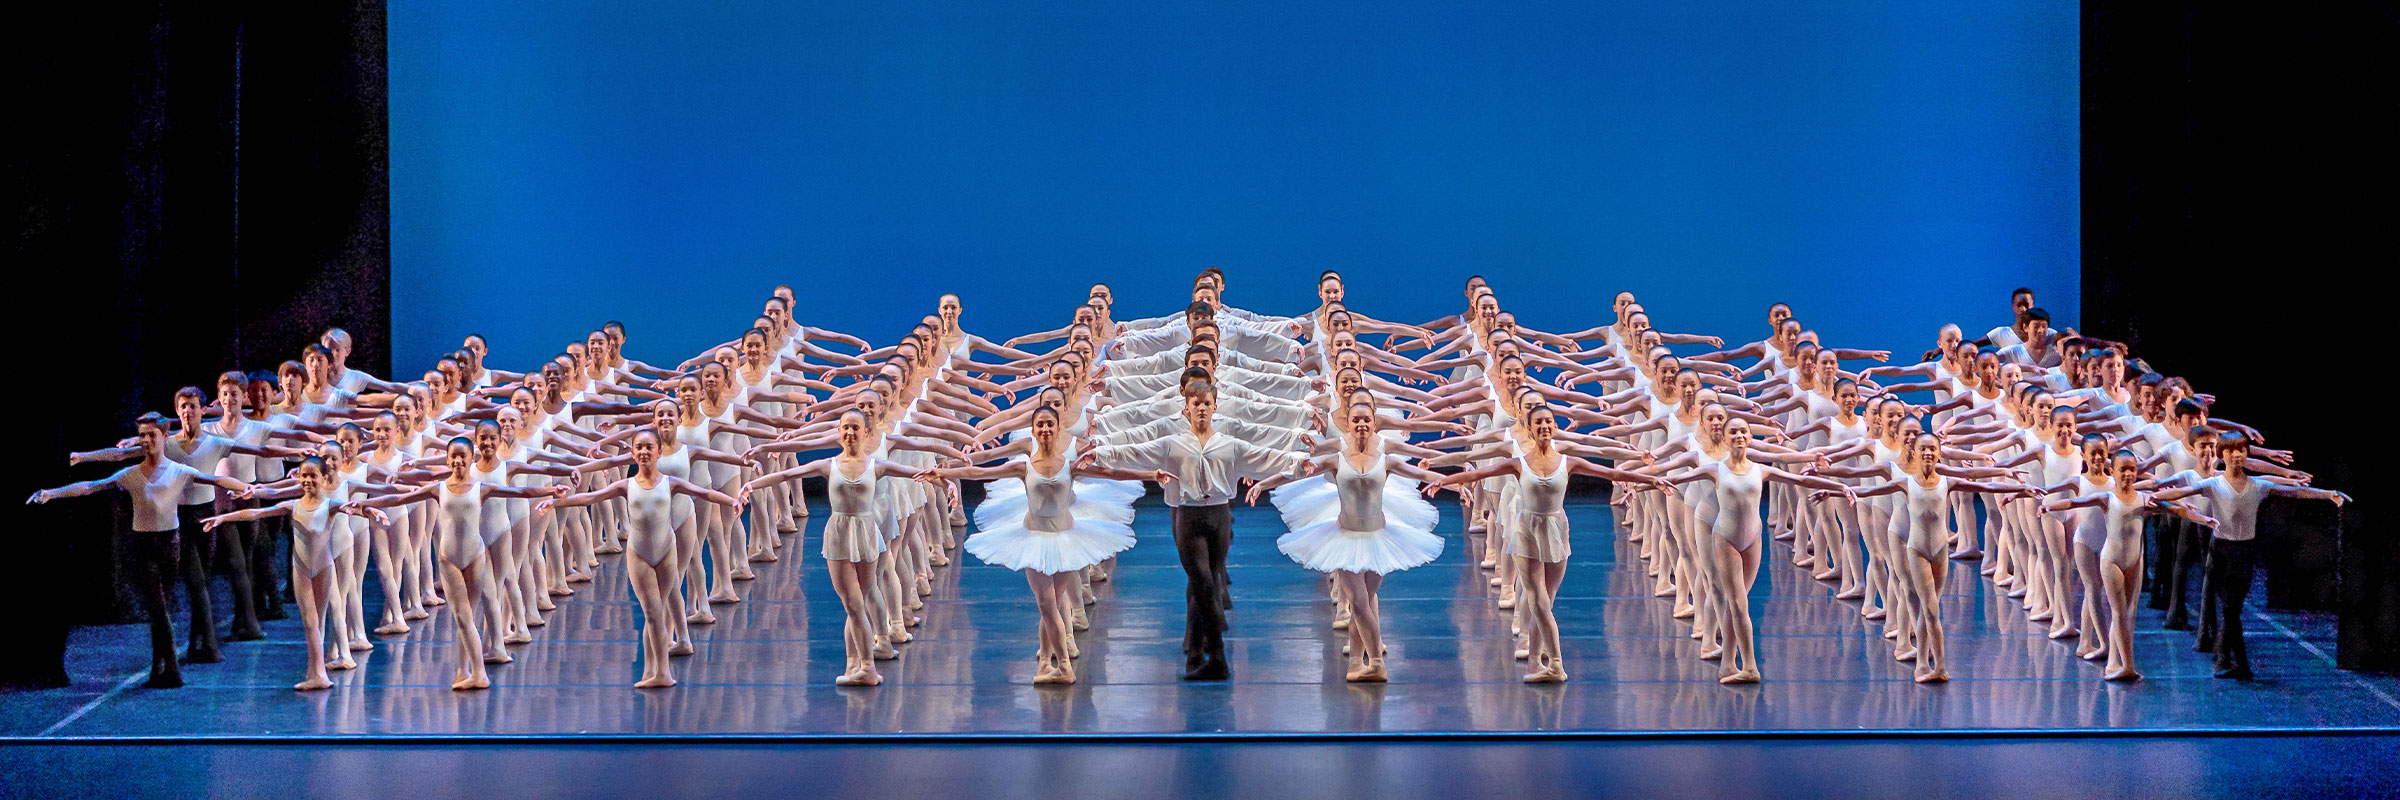 San Francisco Ballet School students performing during the 2016 student showcase. (© Chris Hardy)